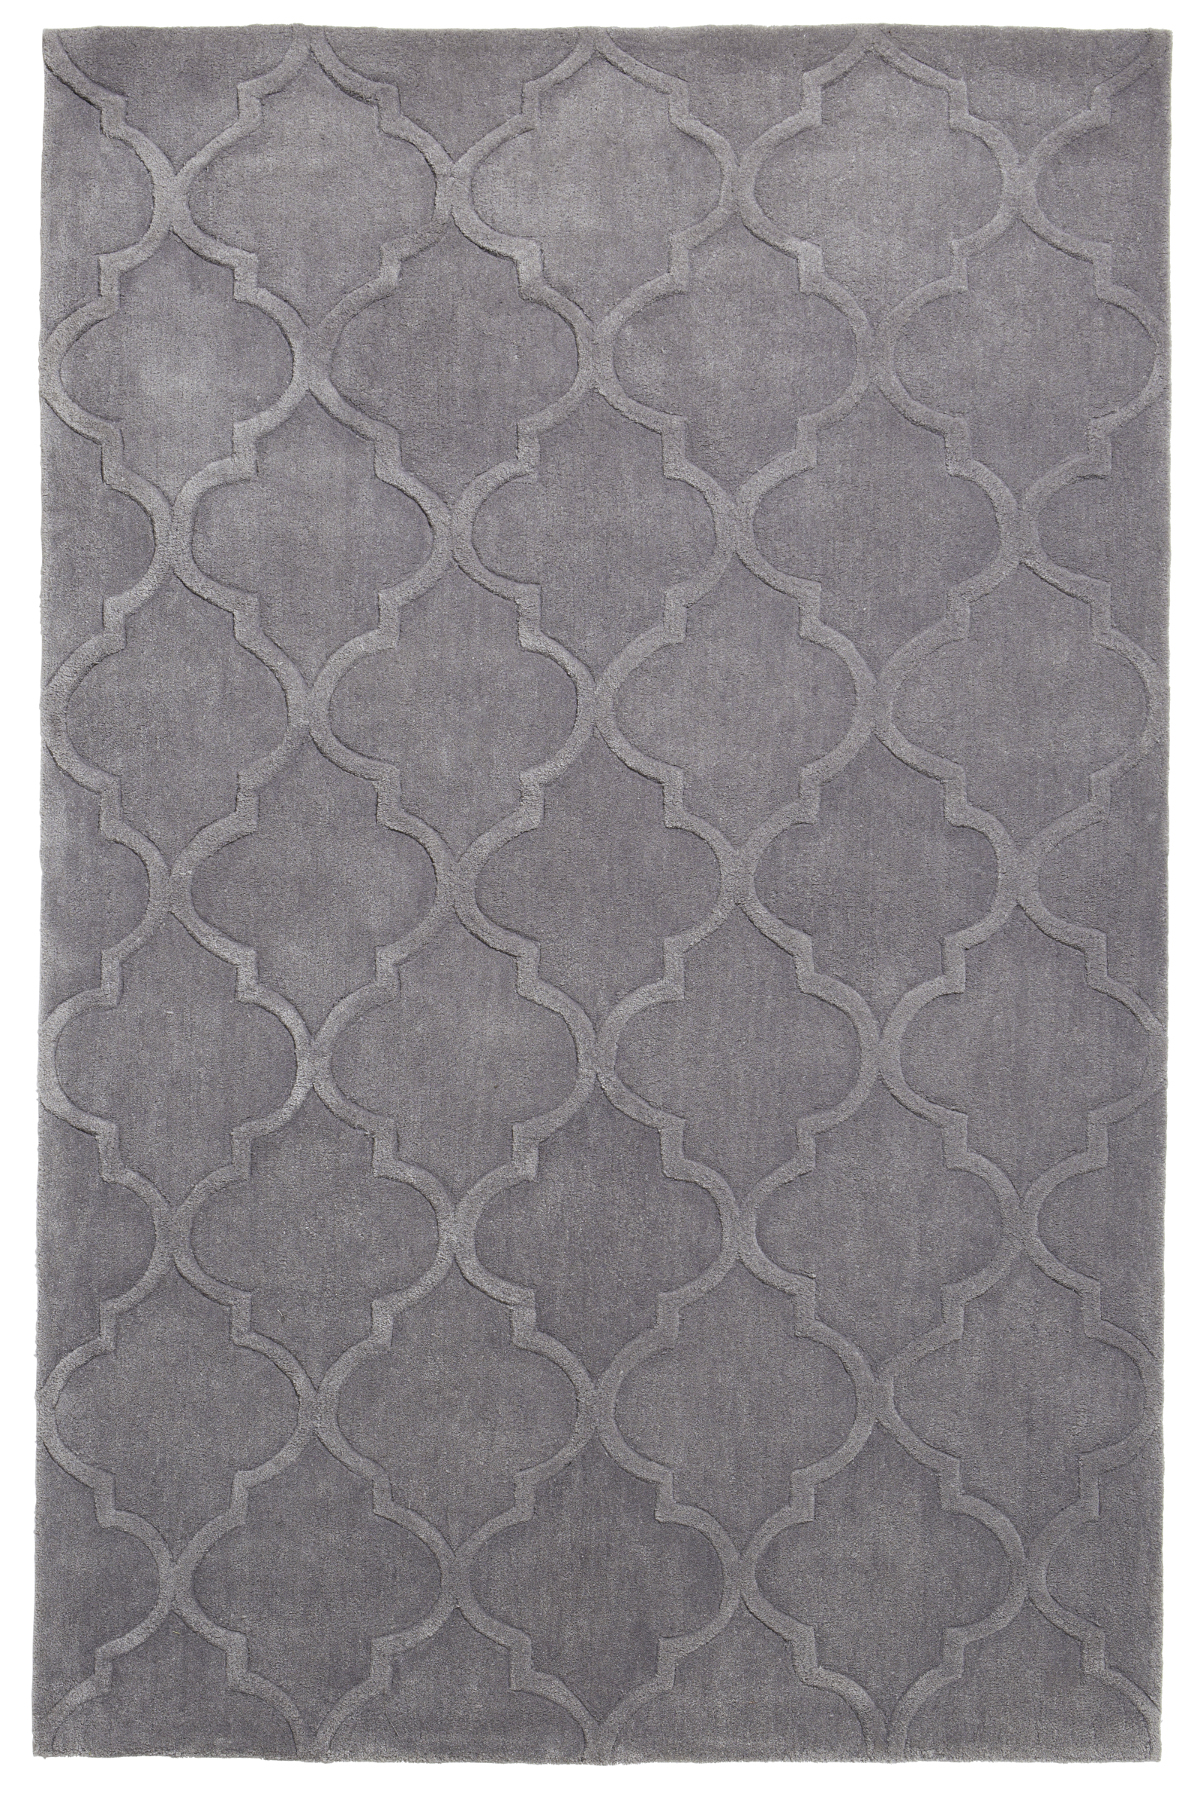 sage sagelight awhl rug light blue products geometric modern trellis weavers artistic holden